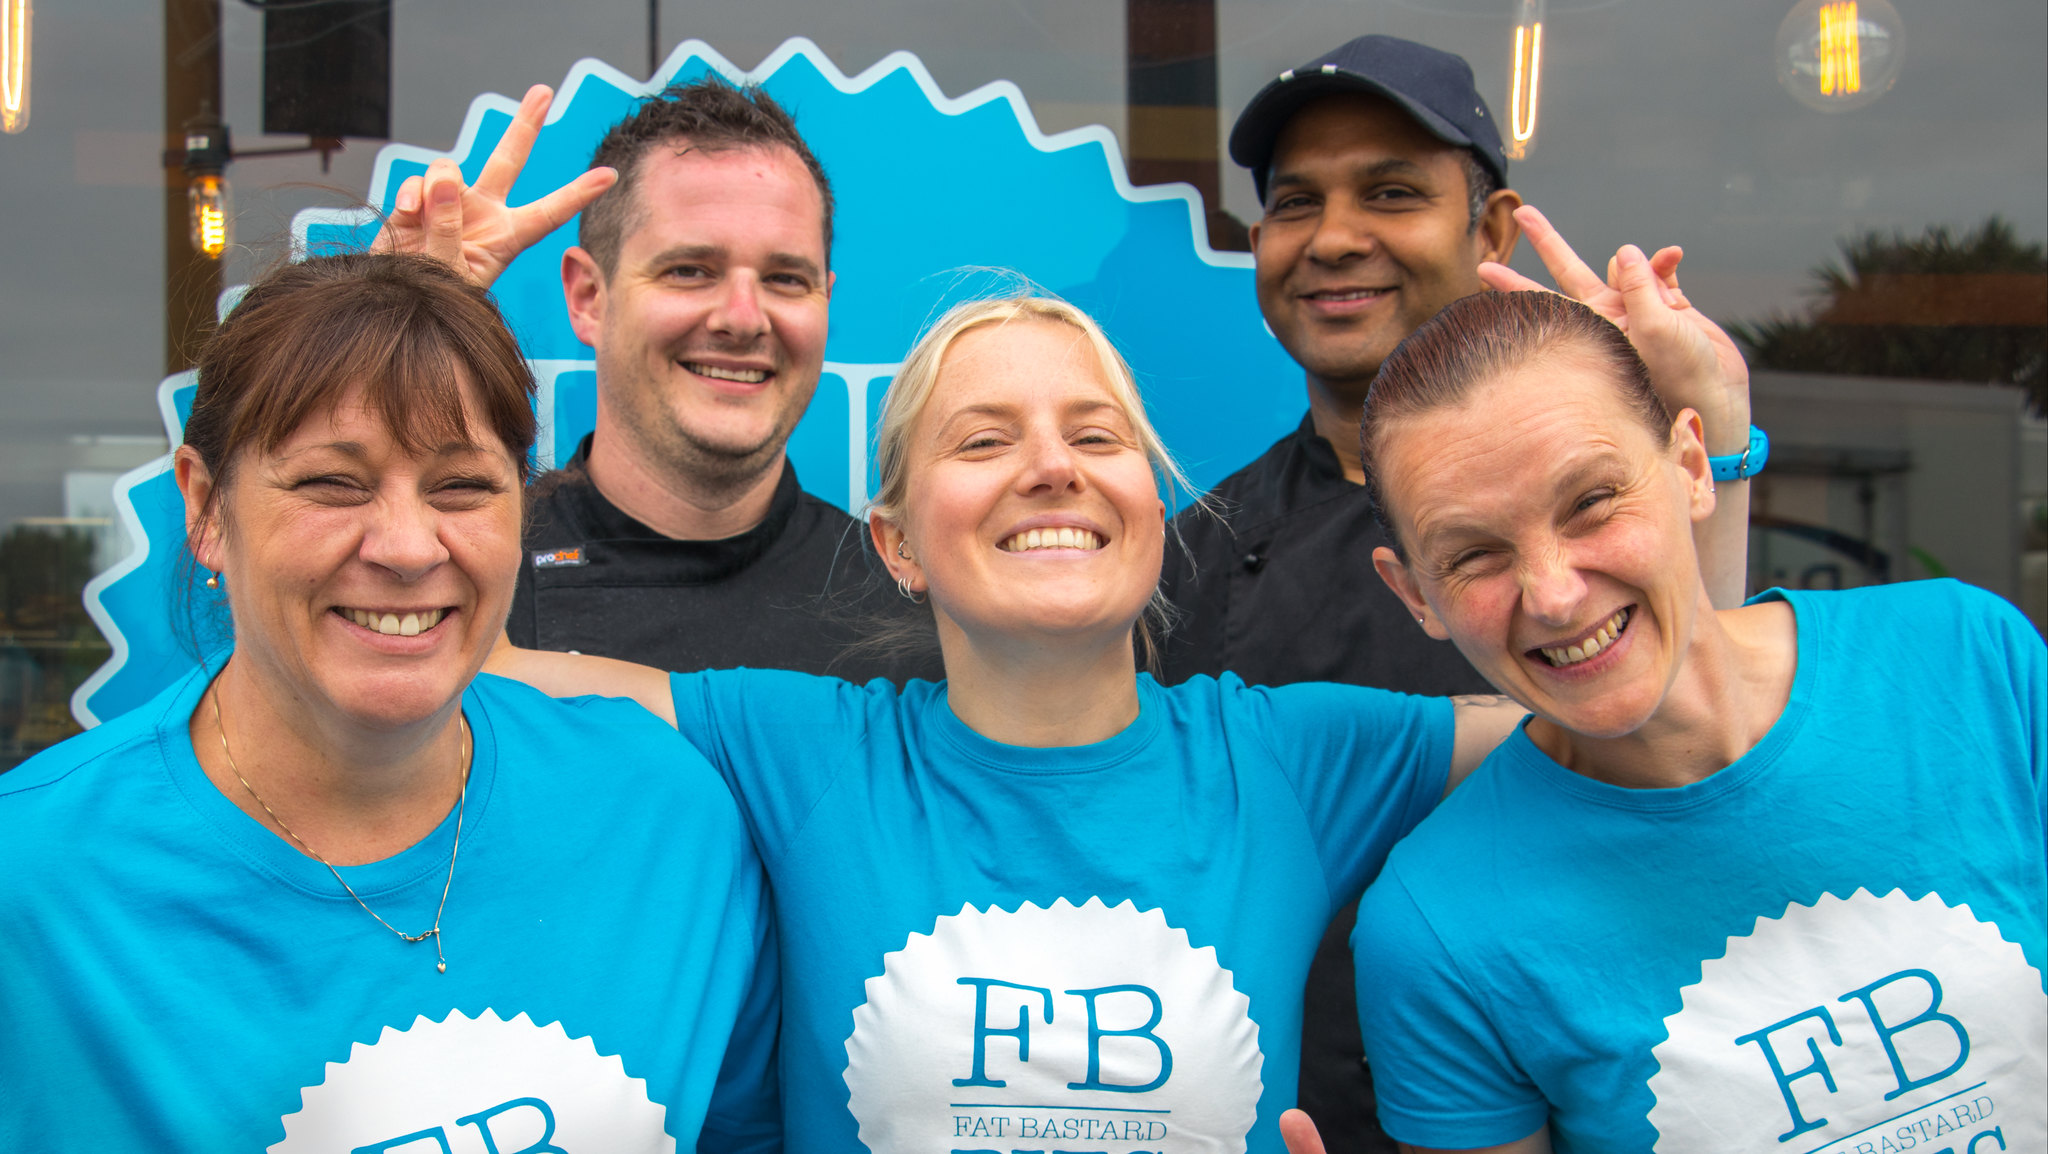 Fat Bastard Pies - Meet the team!